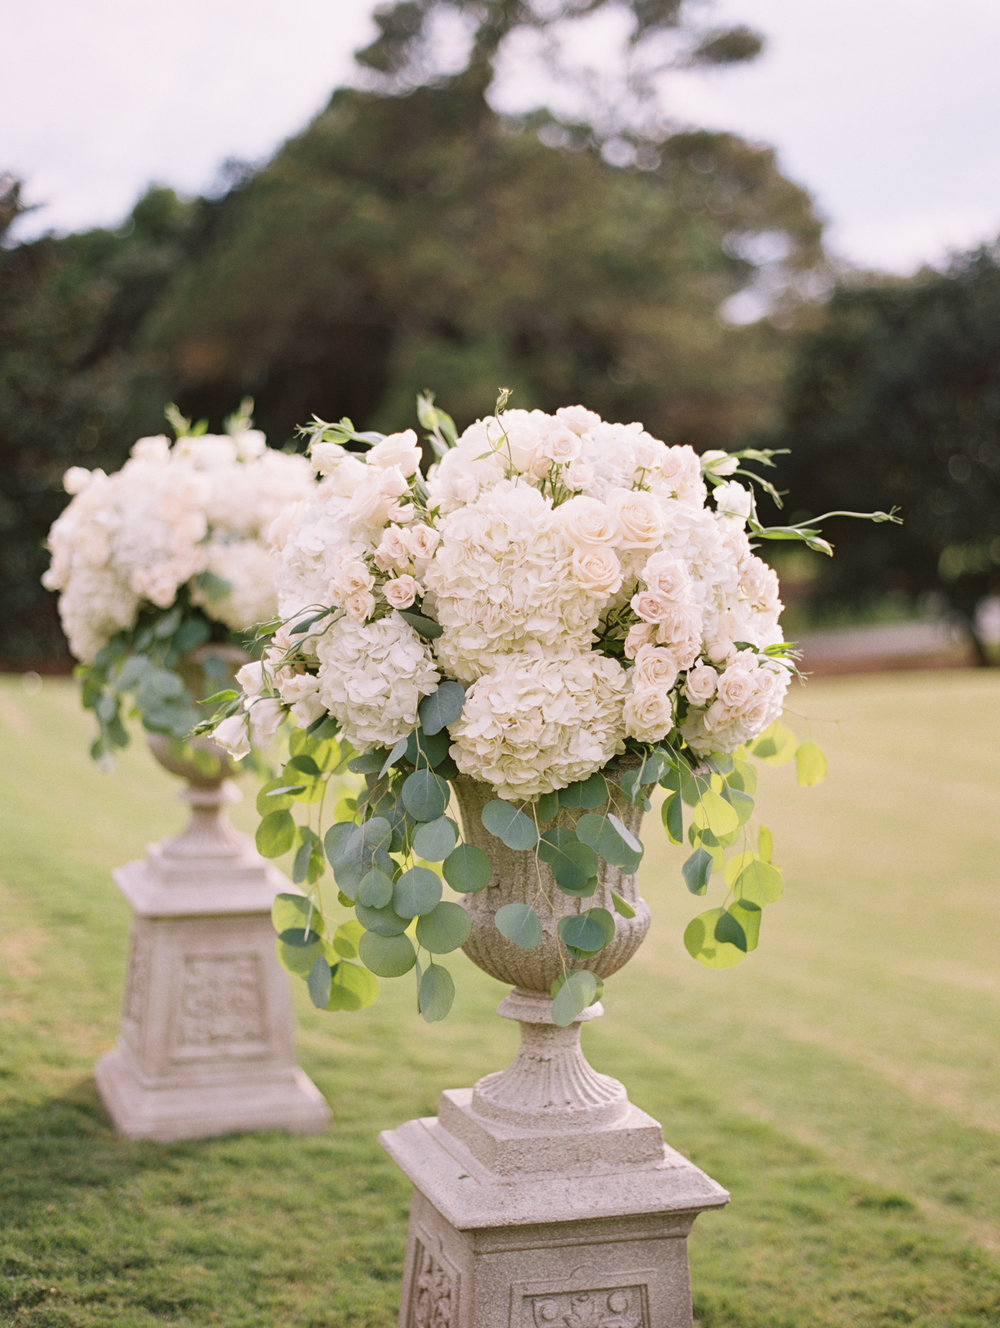 Flower Details - Kiawah Island, South Carolina - Fall Wedding - Julian Leaver Events